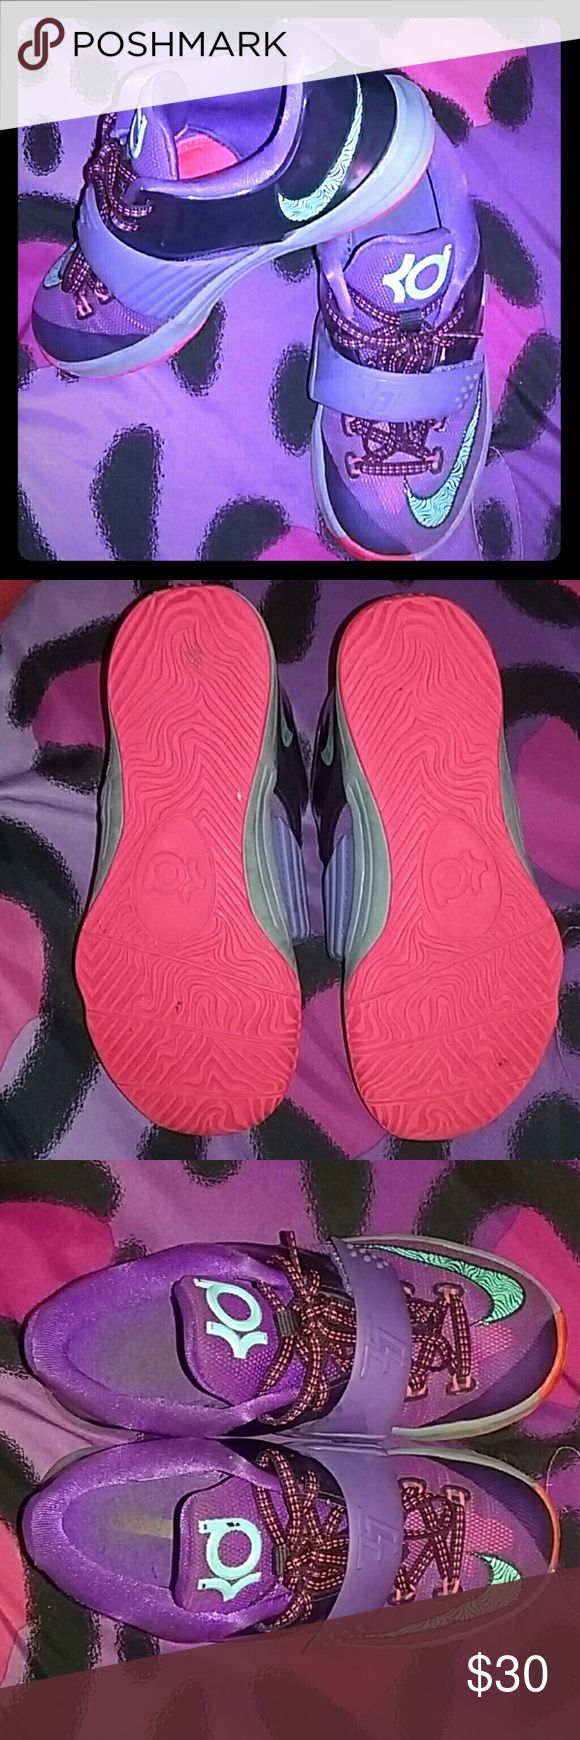 Girls Kevin Durant sneakers Purple/Blue/Gray/Coral Nike Kevin Durant sneakers, girls size 13c, in really good condition, worn a couple times. Nike Shoes Sneakers